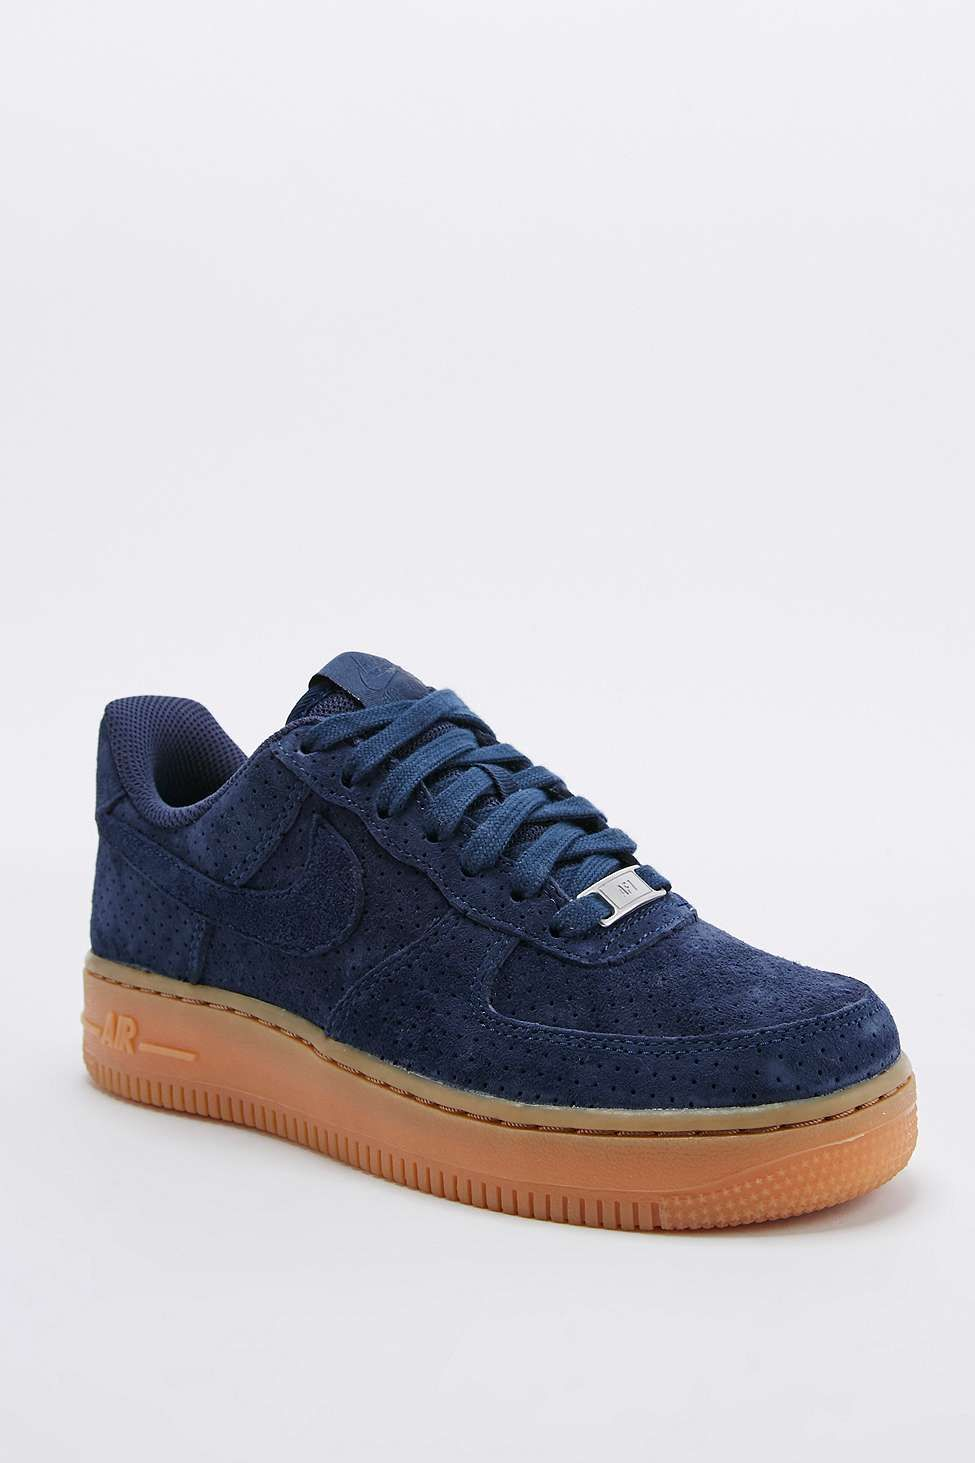 san francisco cb666 37de8 Nike - Baskets montantes Air Force 1 en daim bleu marine